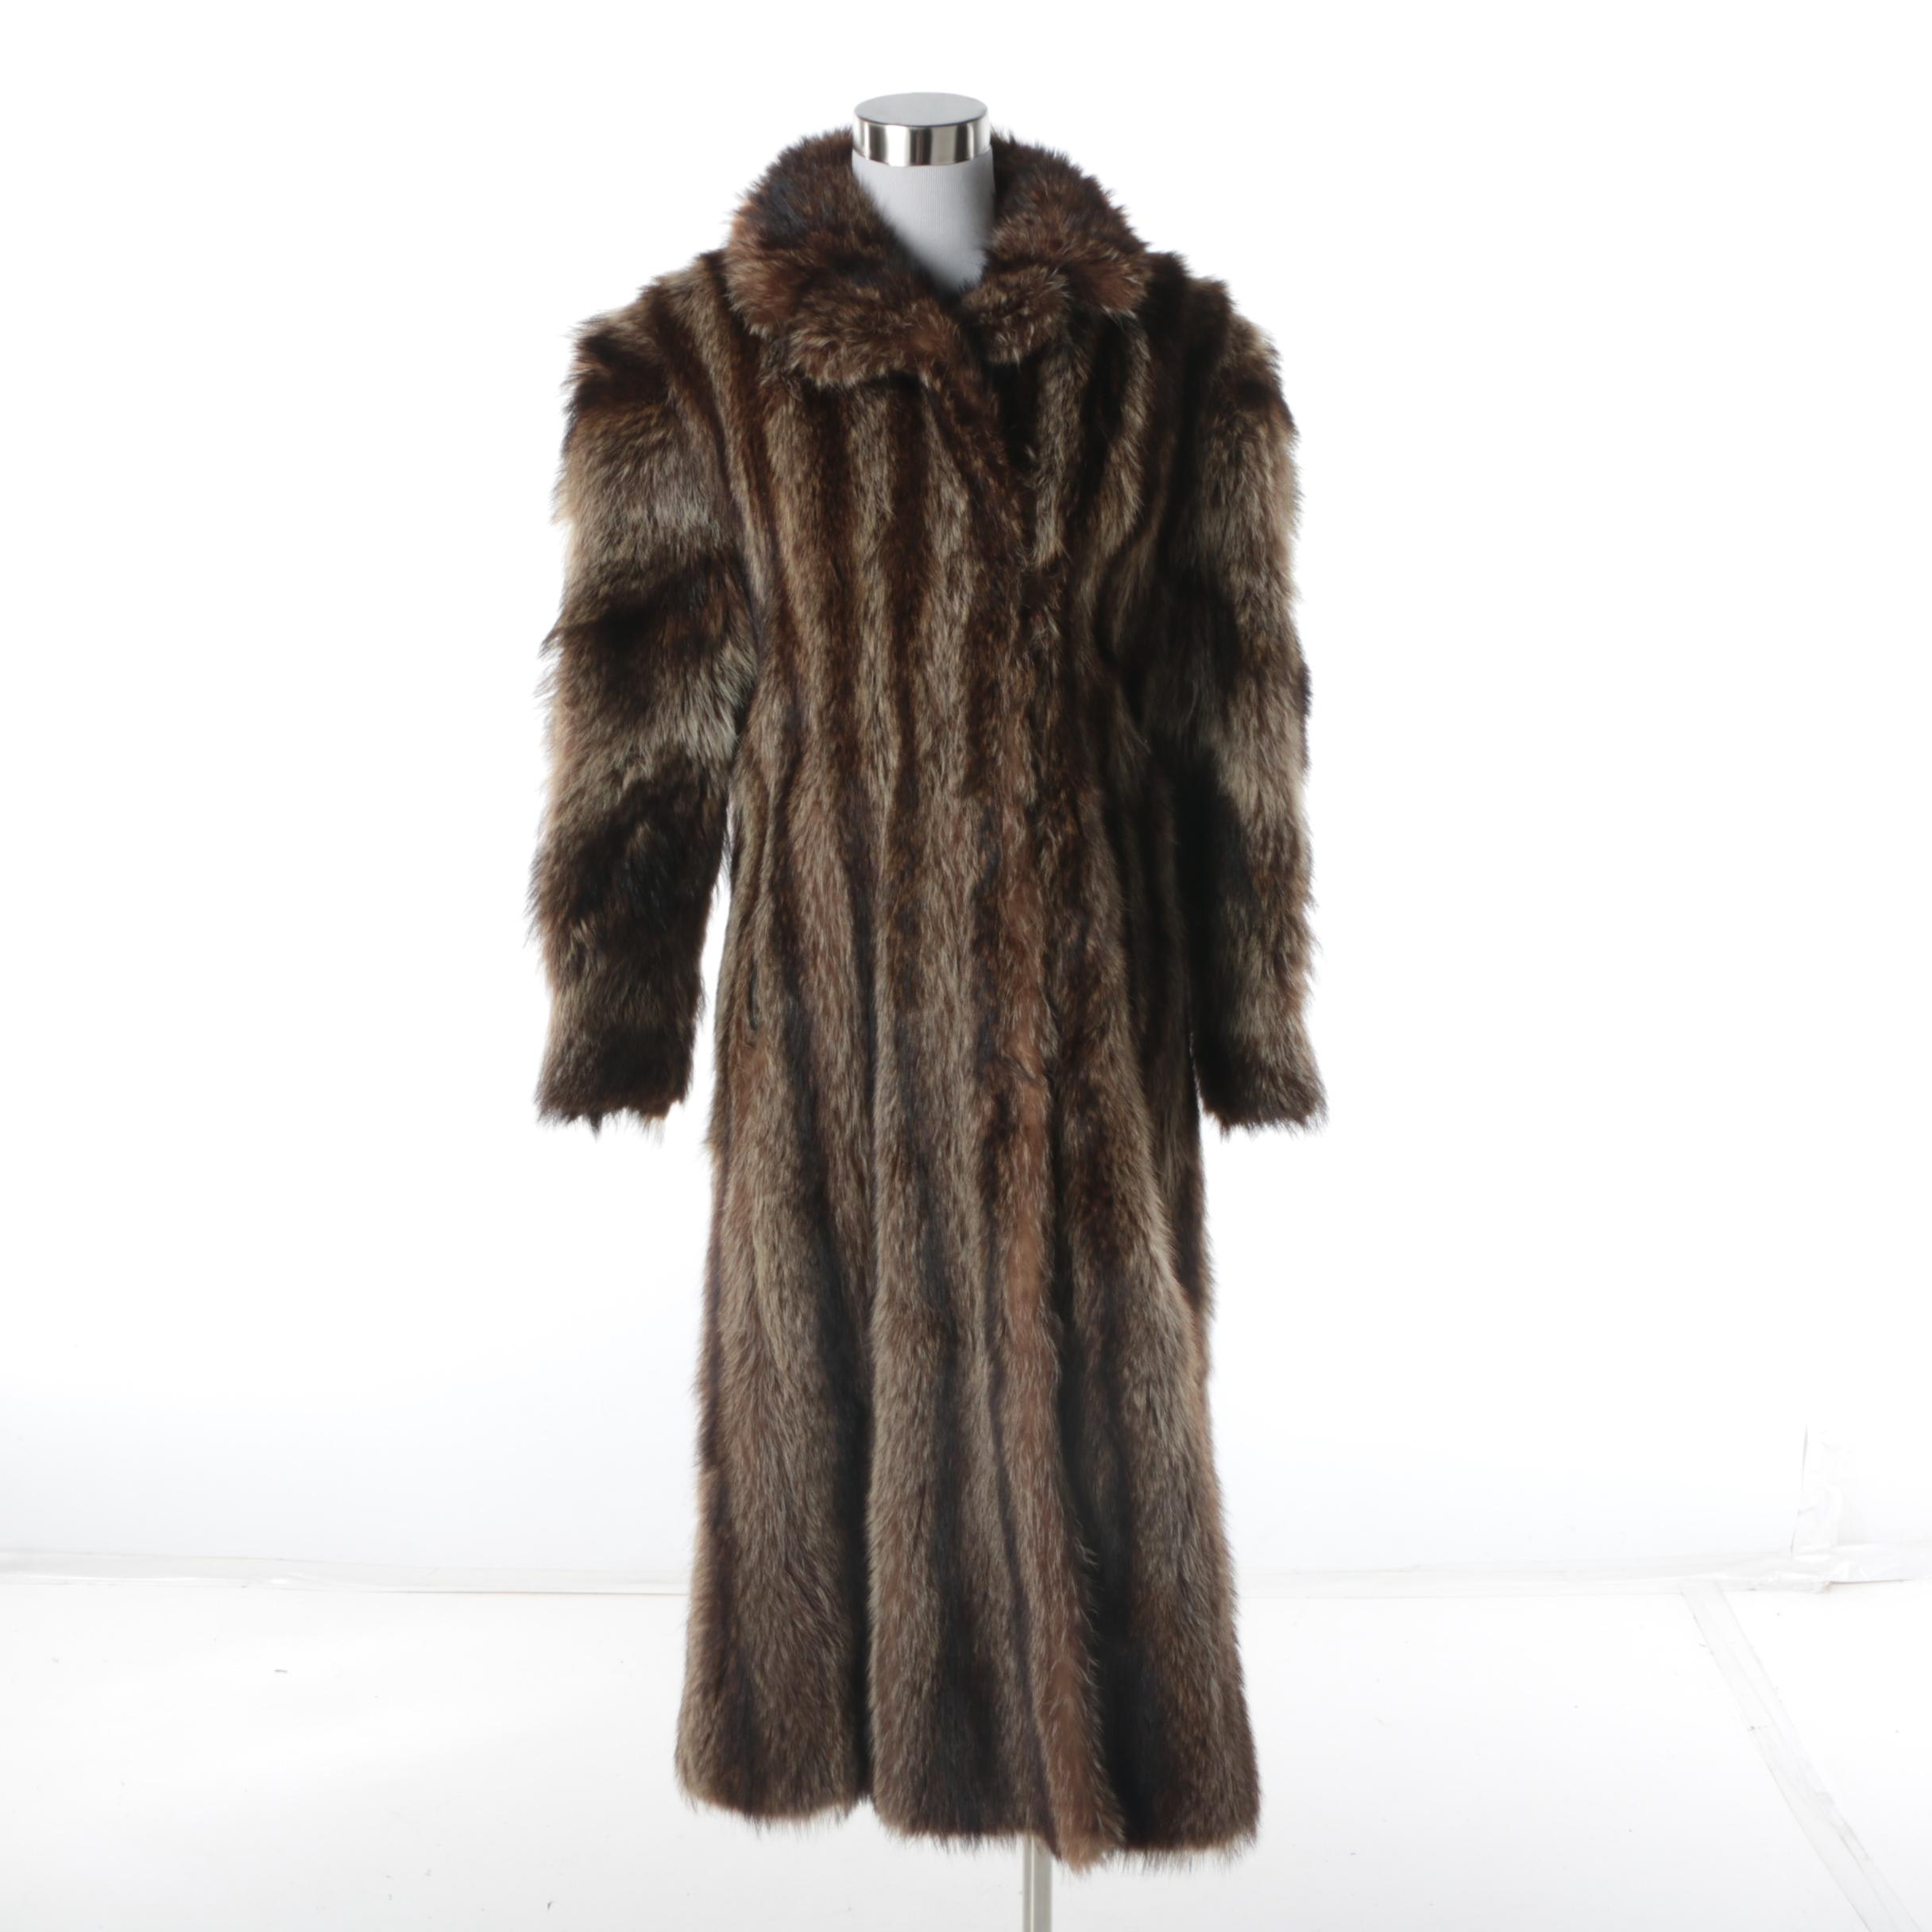 Women's Vintage Thomas E. McElroy Raccoon Fur Coat